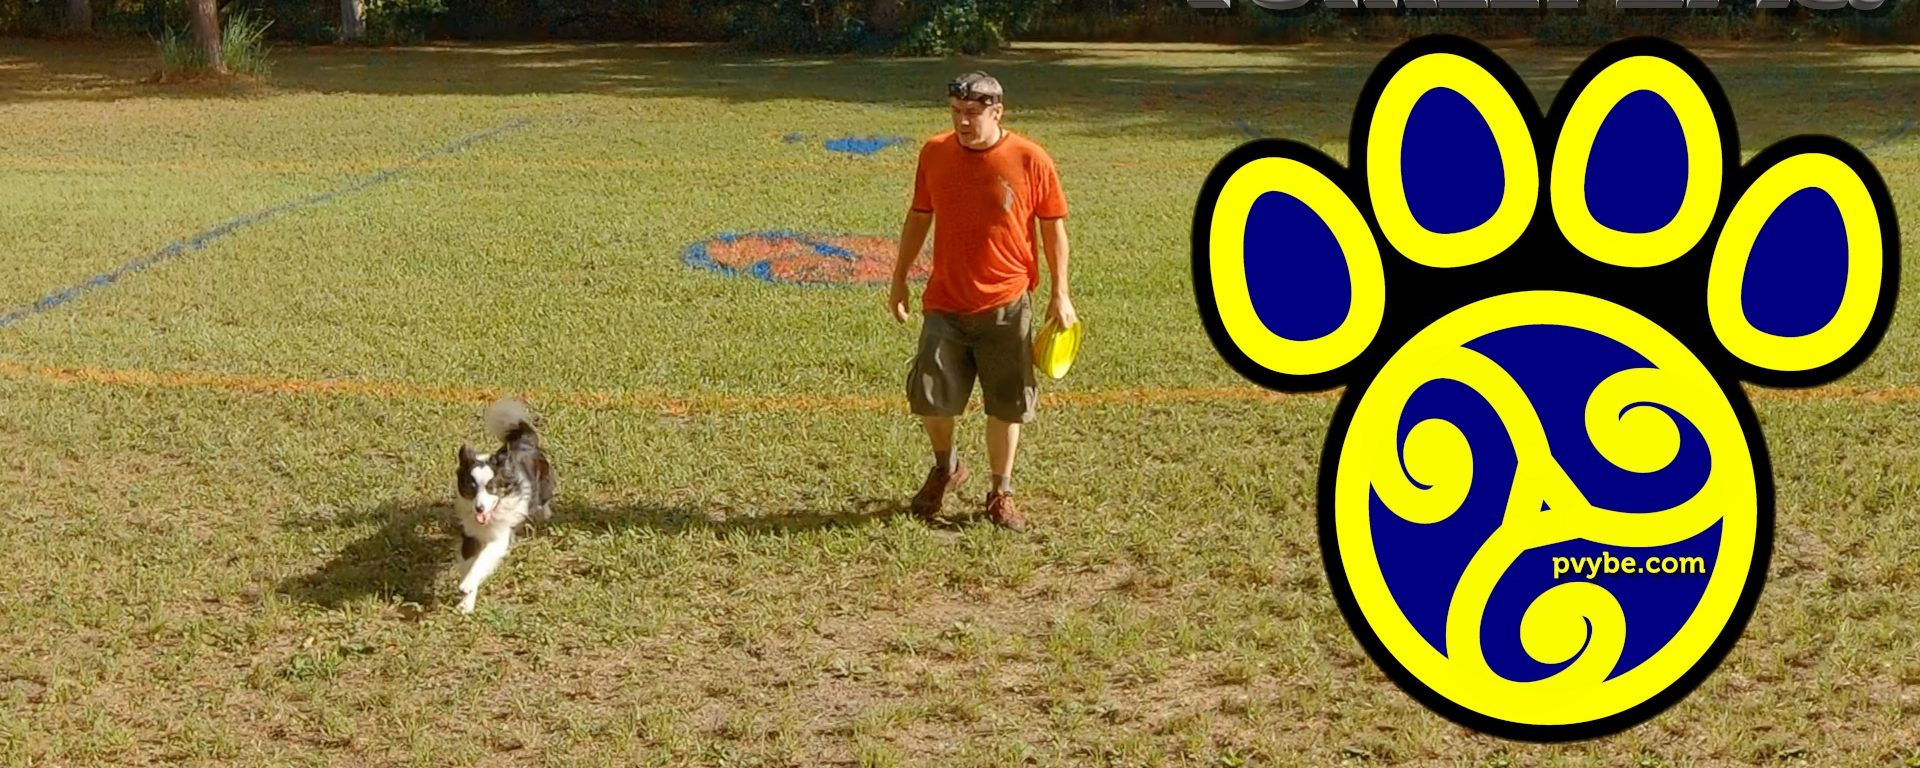 Drop vs Catch | The Best of Both Worlds for Disc Management and Game Strategies